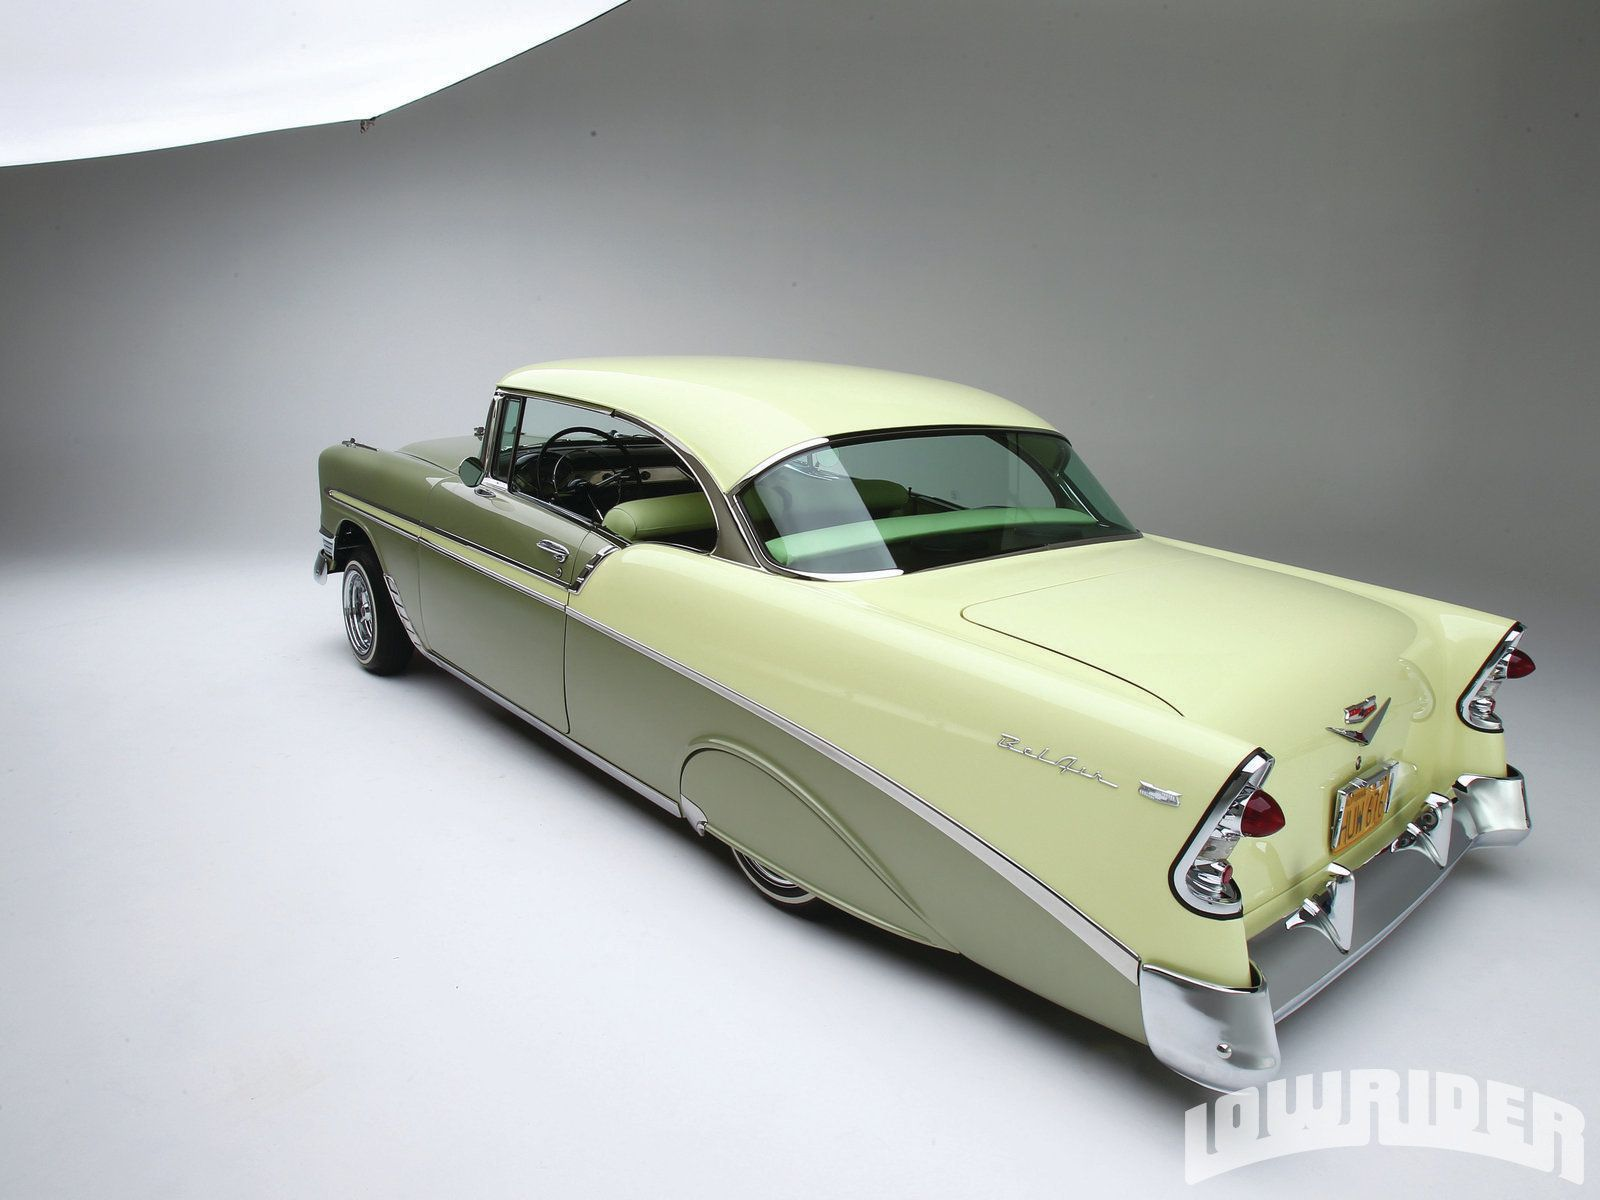 1956 bel air for sale submited images - 1956 Chevrolet Bel Air Rear View Photo 1